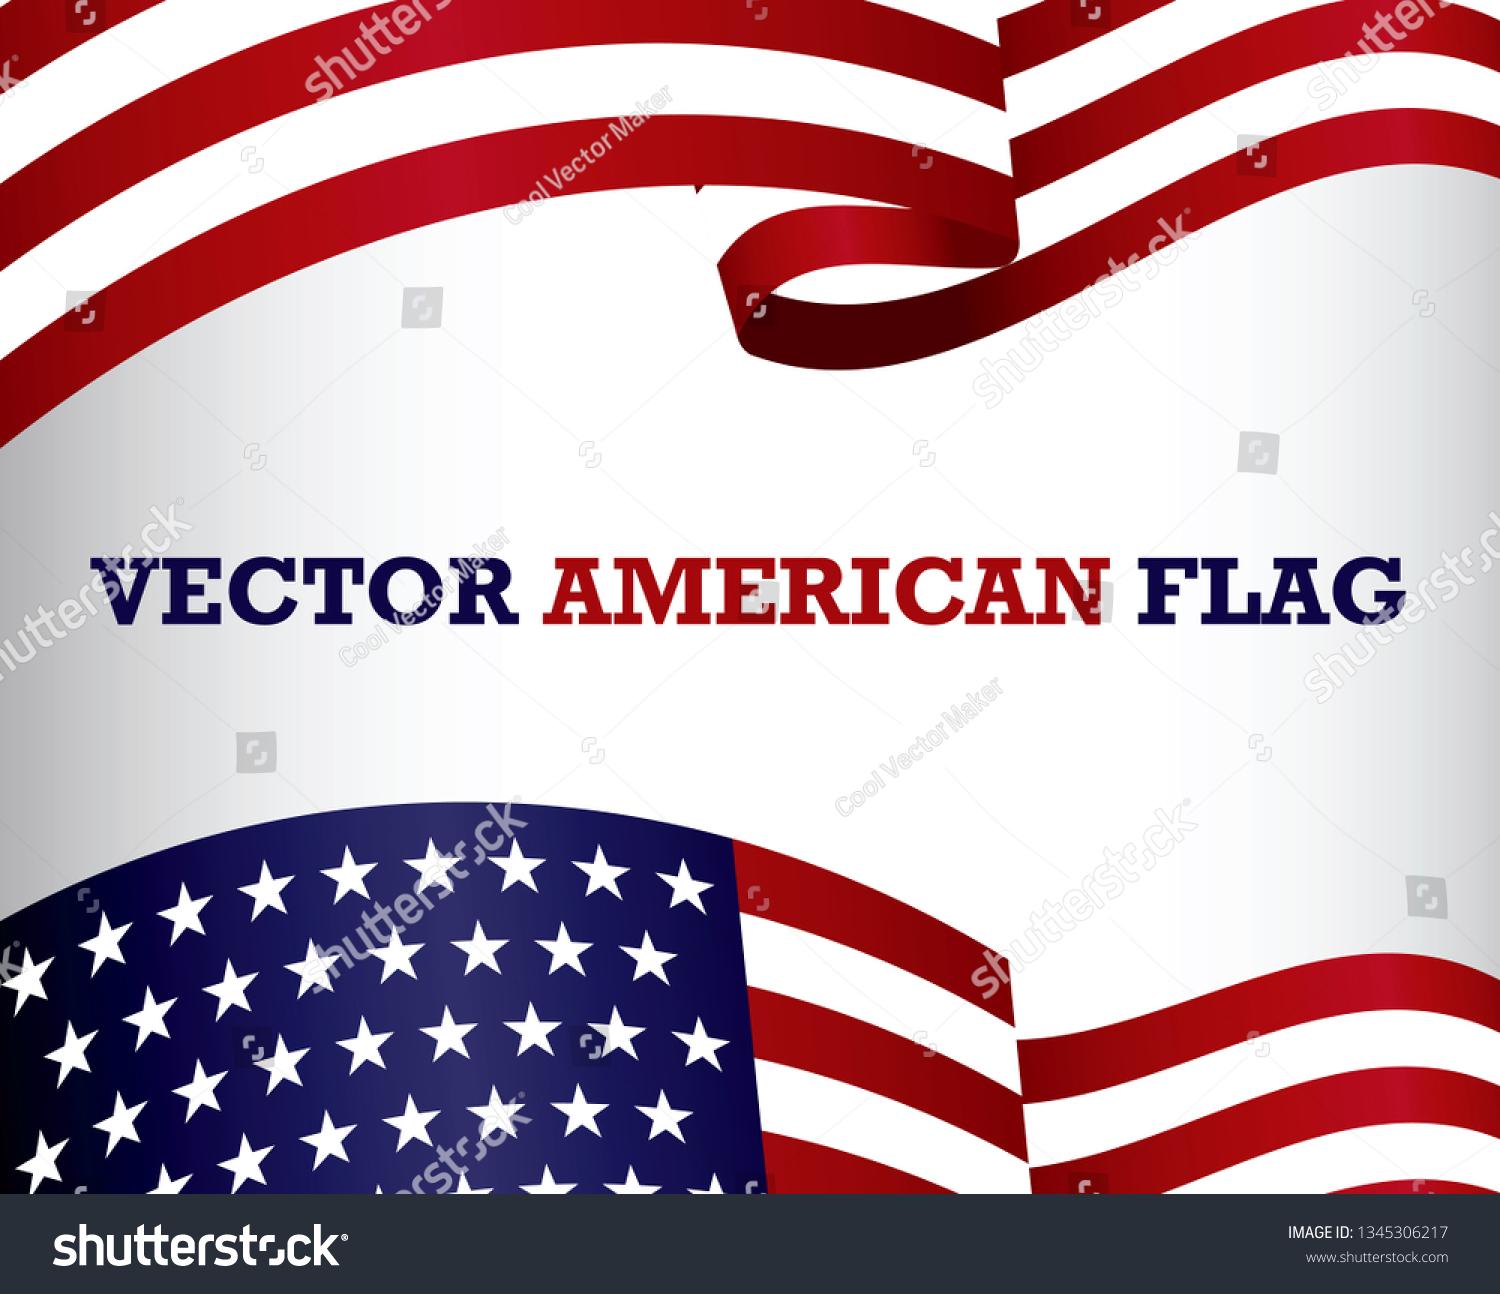 Set American Flag Clip Art Easy Stock Vector (Royalty Free) 1345306217